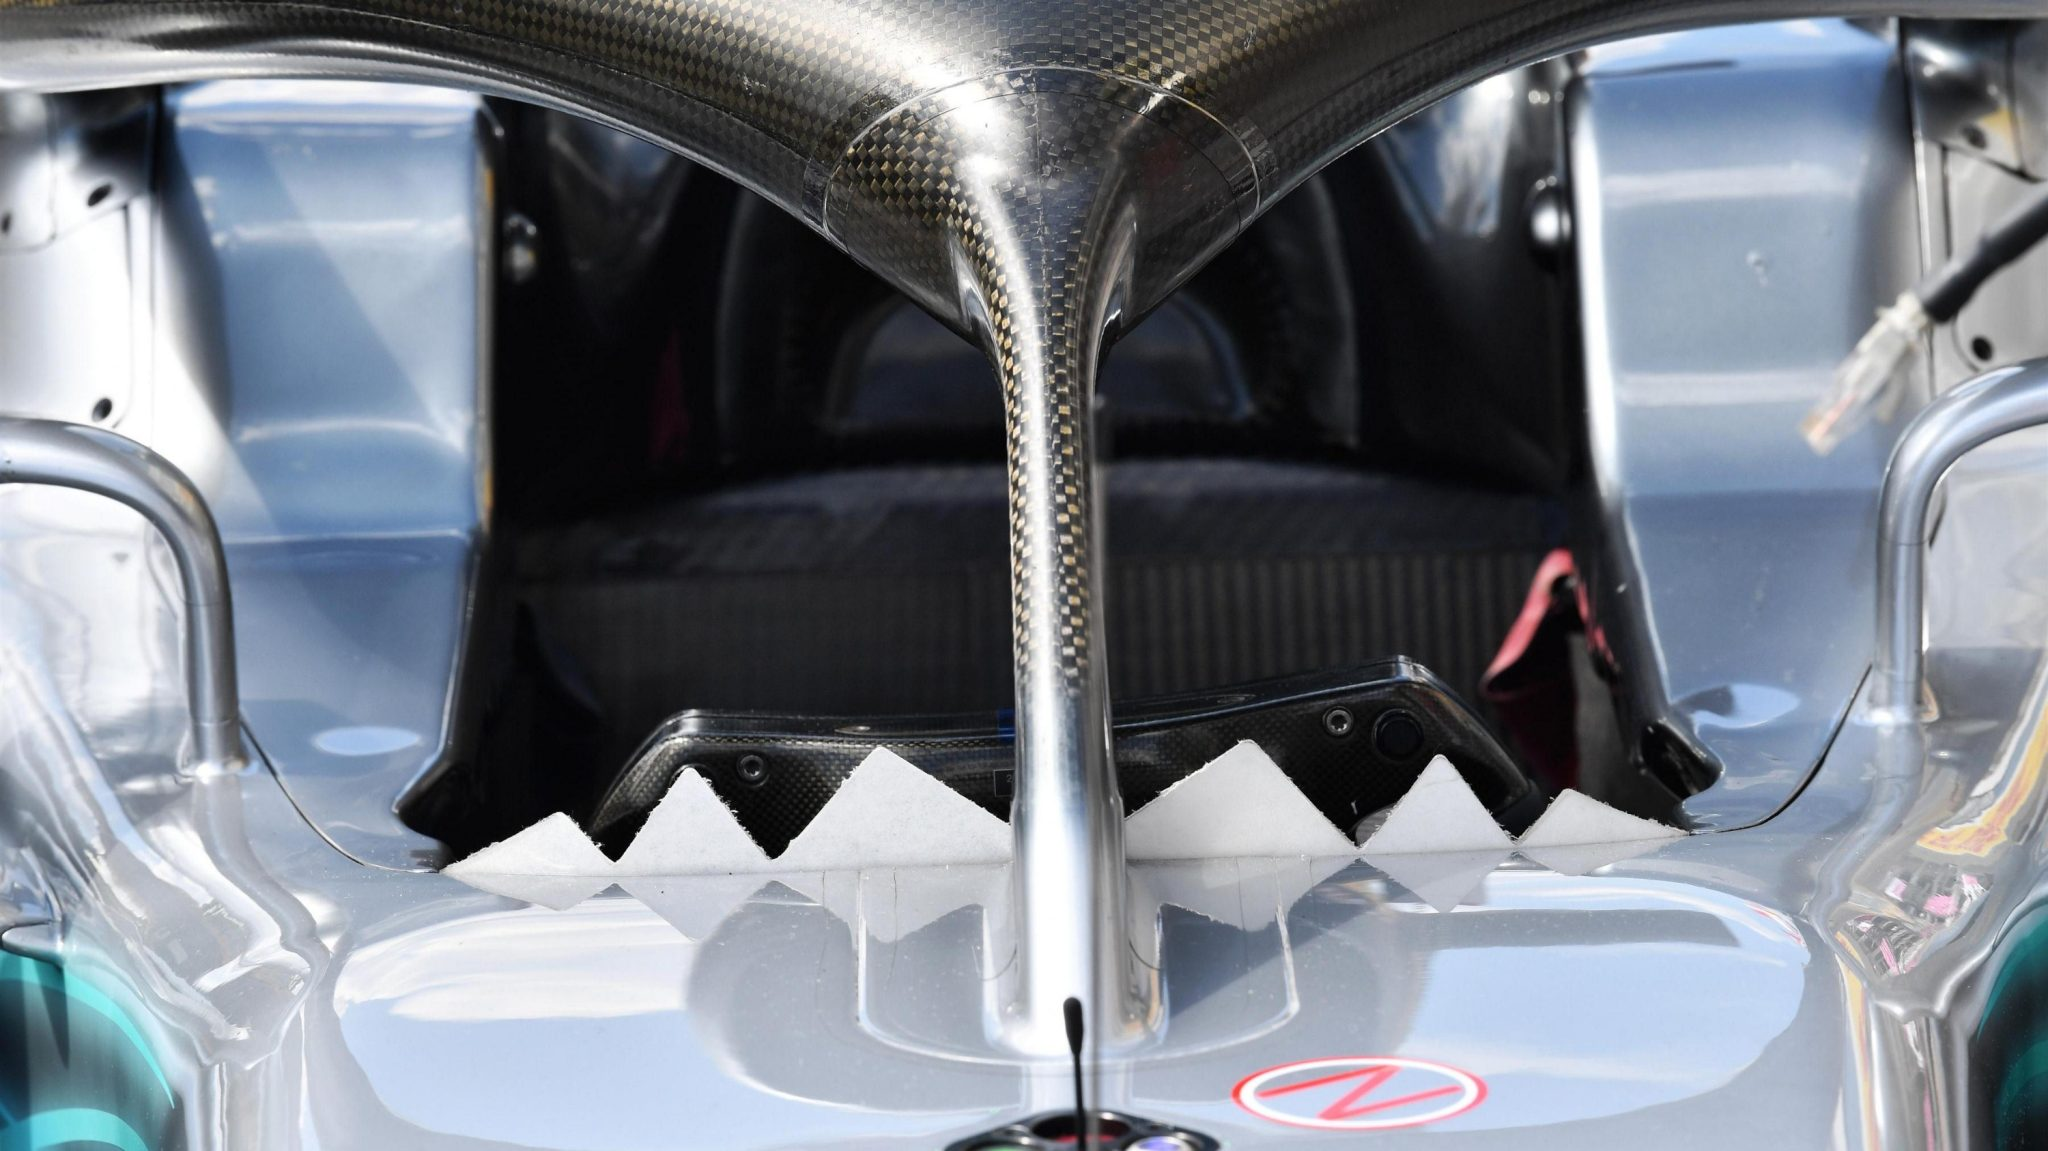 https://www.formula1.com/content/fom-website/en/latest/features/2018/7/gallery--race-preparations-in-hungary/_jcr_content/featureContent/manual_gallery/image23.img.2048.medium.jpg/1532611753933.jpg